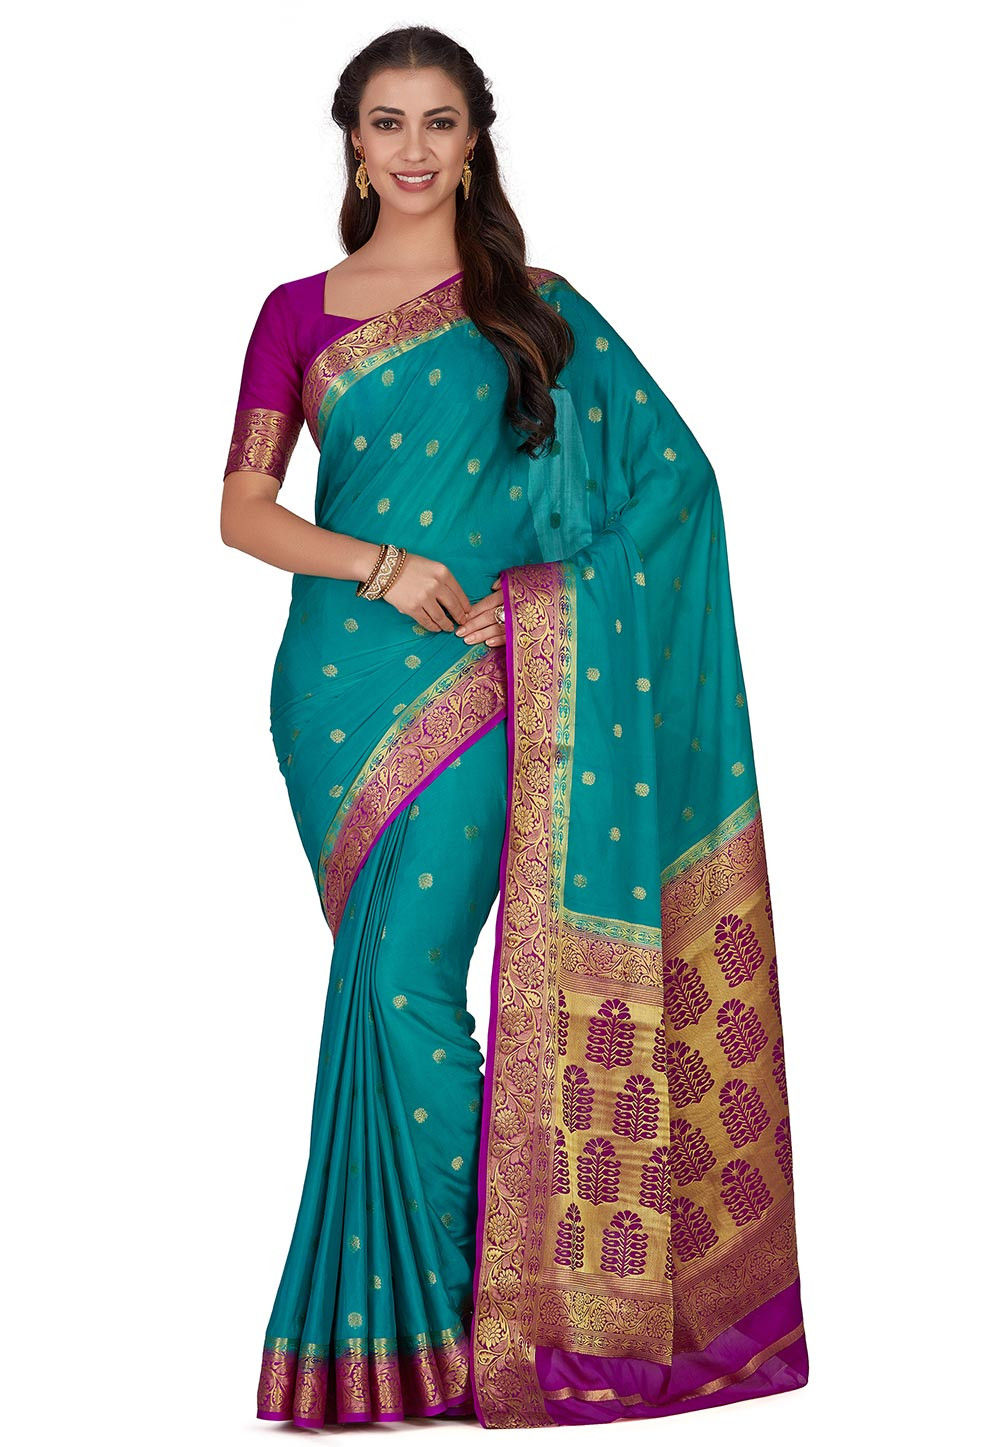 Kanchipuram Crepe Saree in Teal Blue